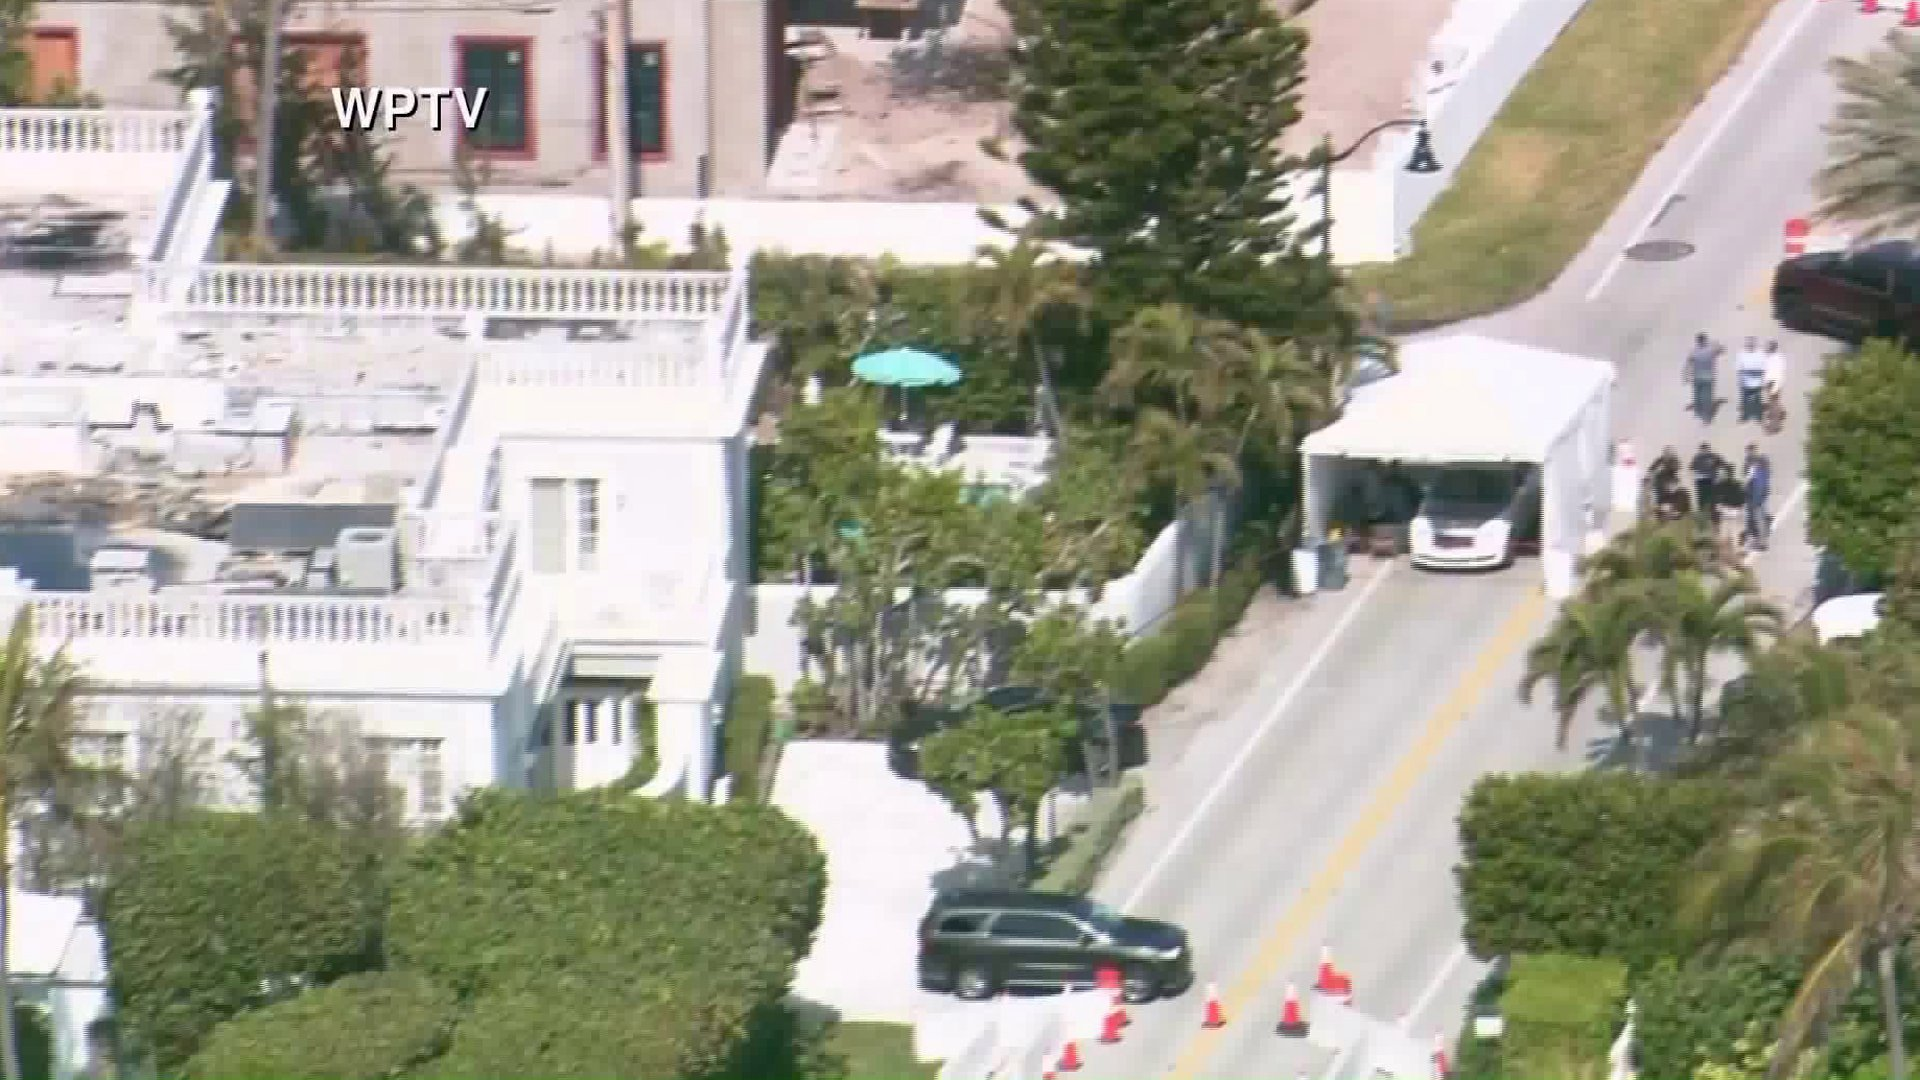 Law enforcement responded to Mar-a-Lago resort in Palm Beach, Florida, on Jan. 31, 2020. (Credit: WPTV)